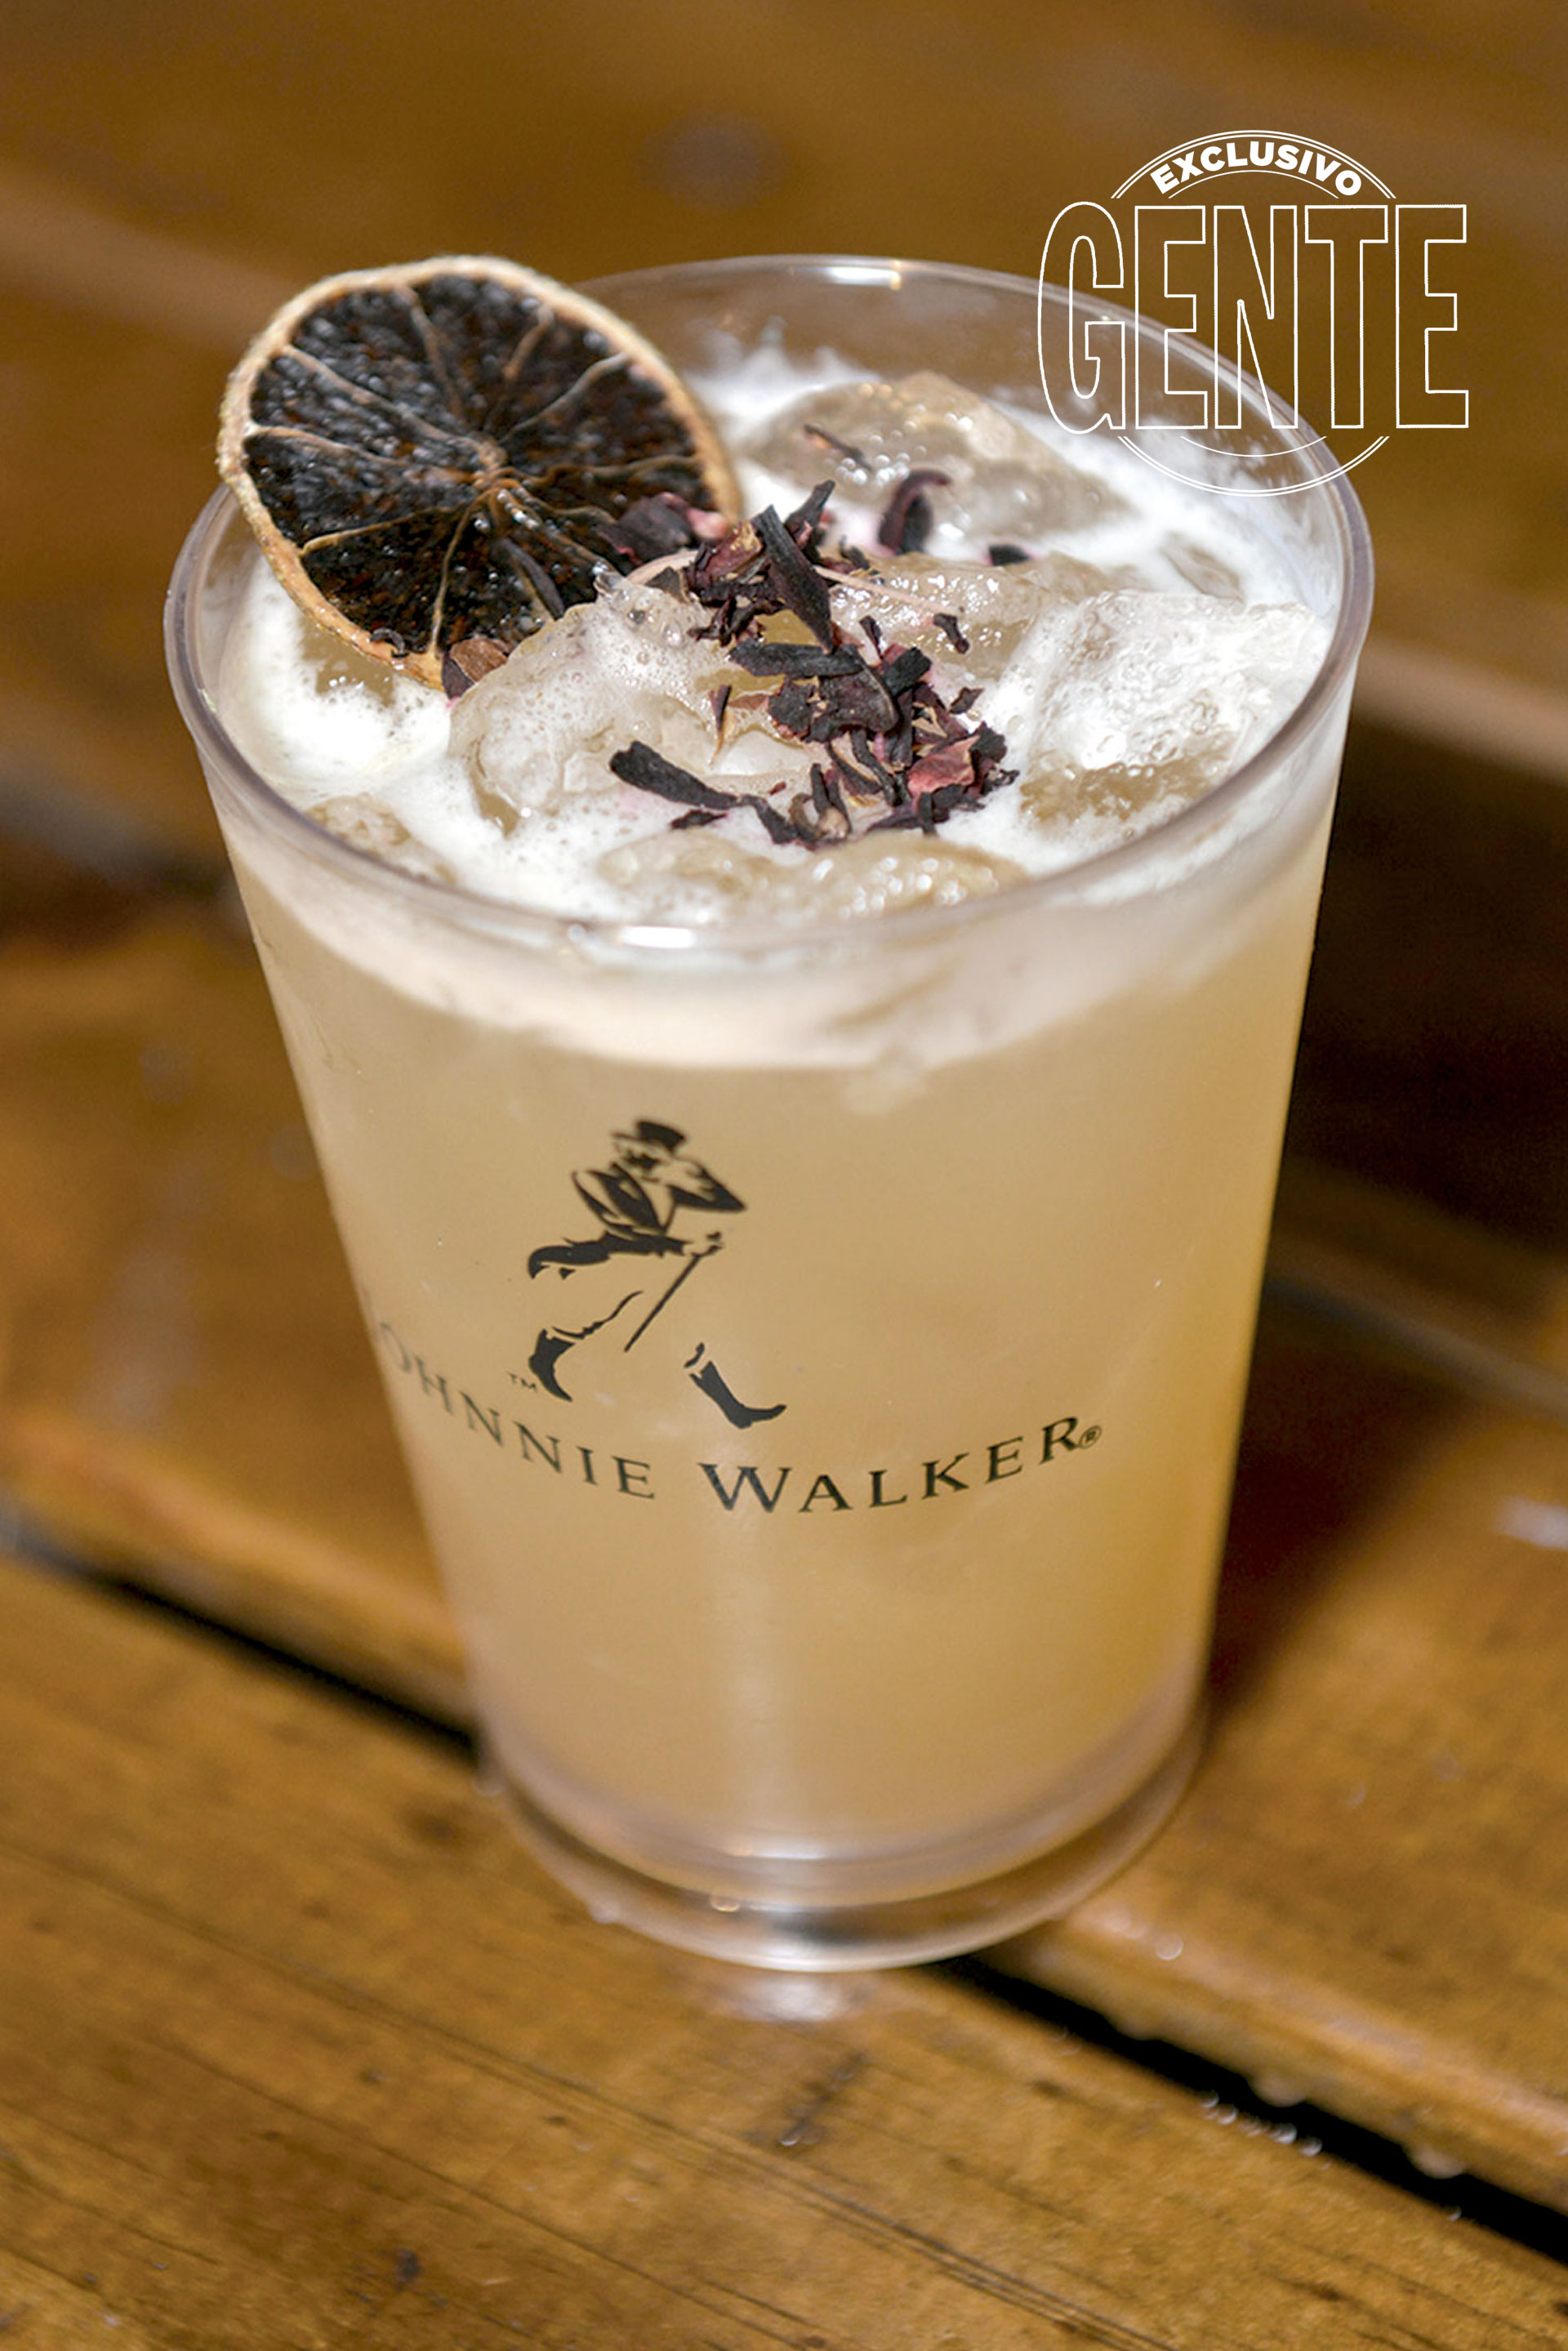 Johnnie Walker Mixing Truck. Penicillin: Johnnie Walker Red Label y Double Black, miel salada de coco, jengibre y limón.